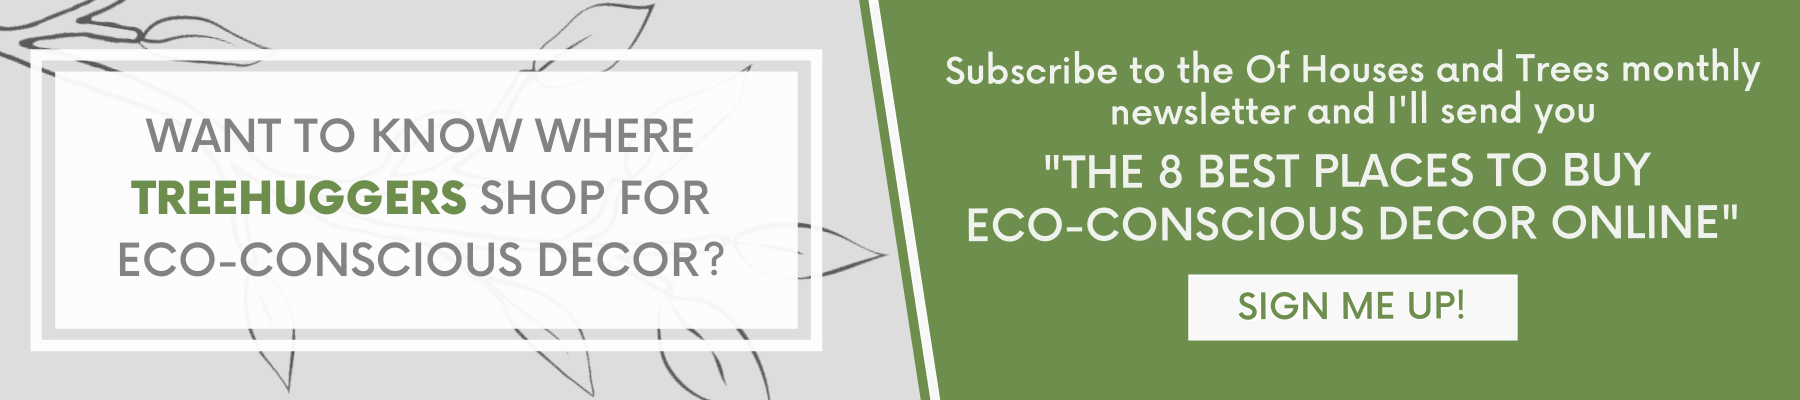 """Click here to subscribe to the Of Houses and Trees newsletter and get """"The 8 Best Places to Buy Eco-Conscious Decor"""" delivered to your inbox!"""